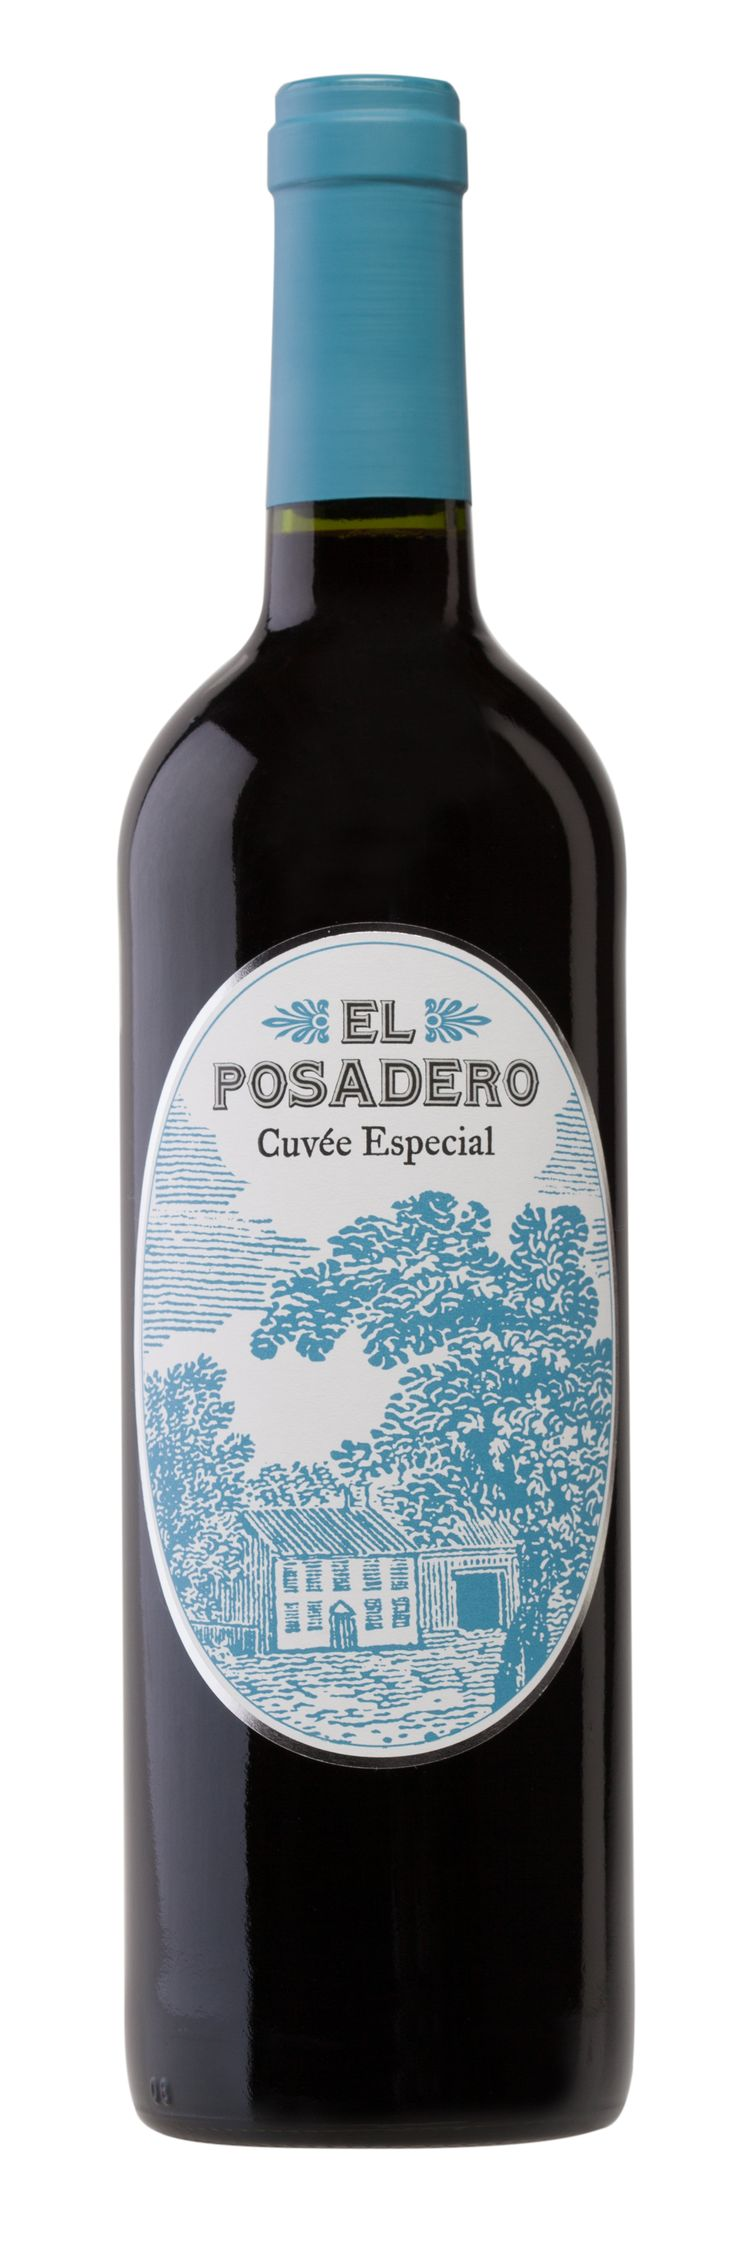 El Posadero is produced in the outskirts of Madrid, in the high elevation town of Arganda del Rey at 750 meters (2,460 ft.) elevation. This artisanal complex wine is fashioned from organically grown vines...